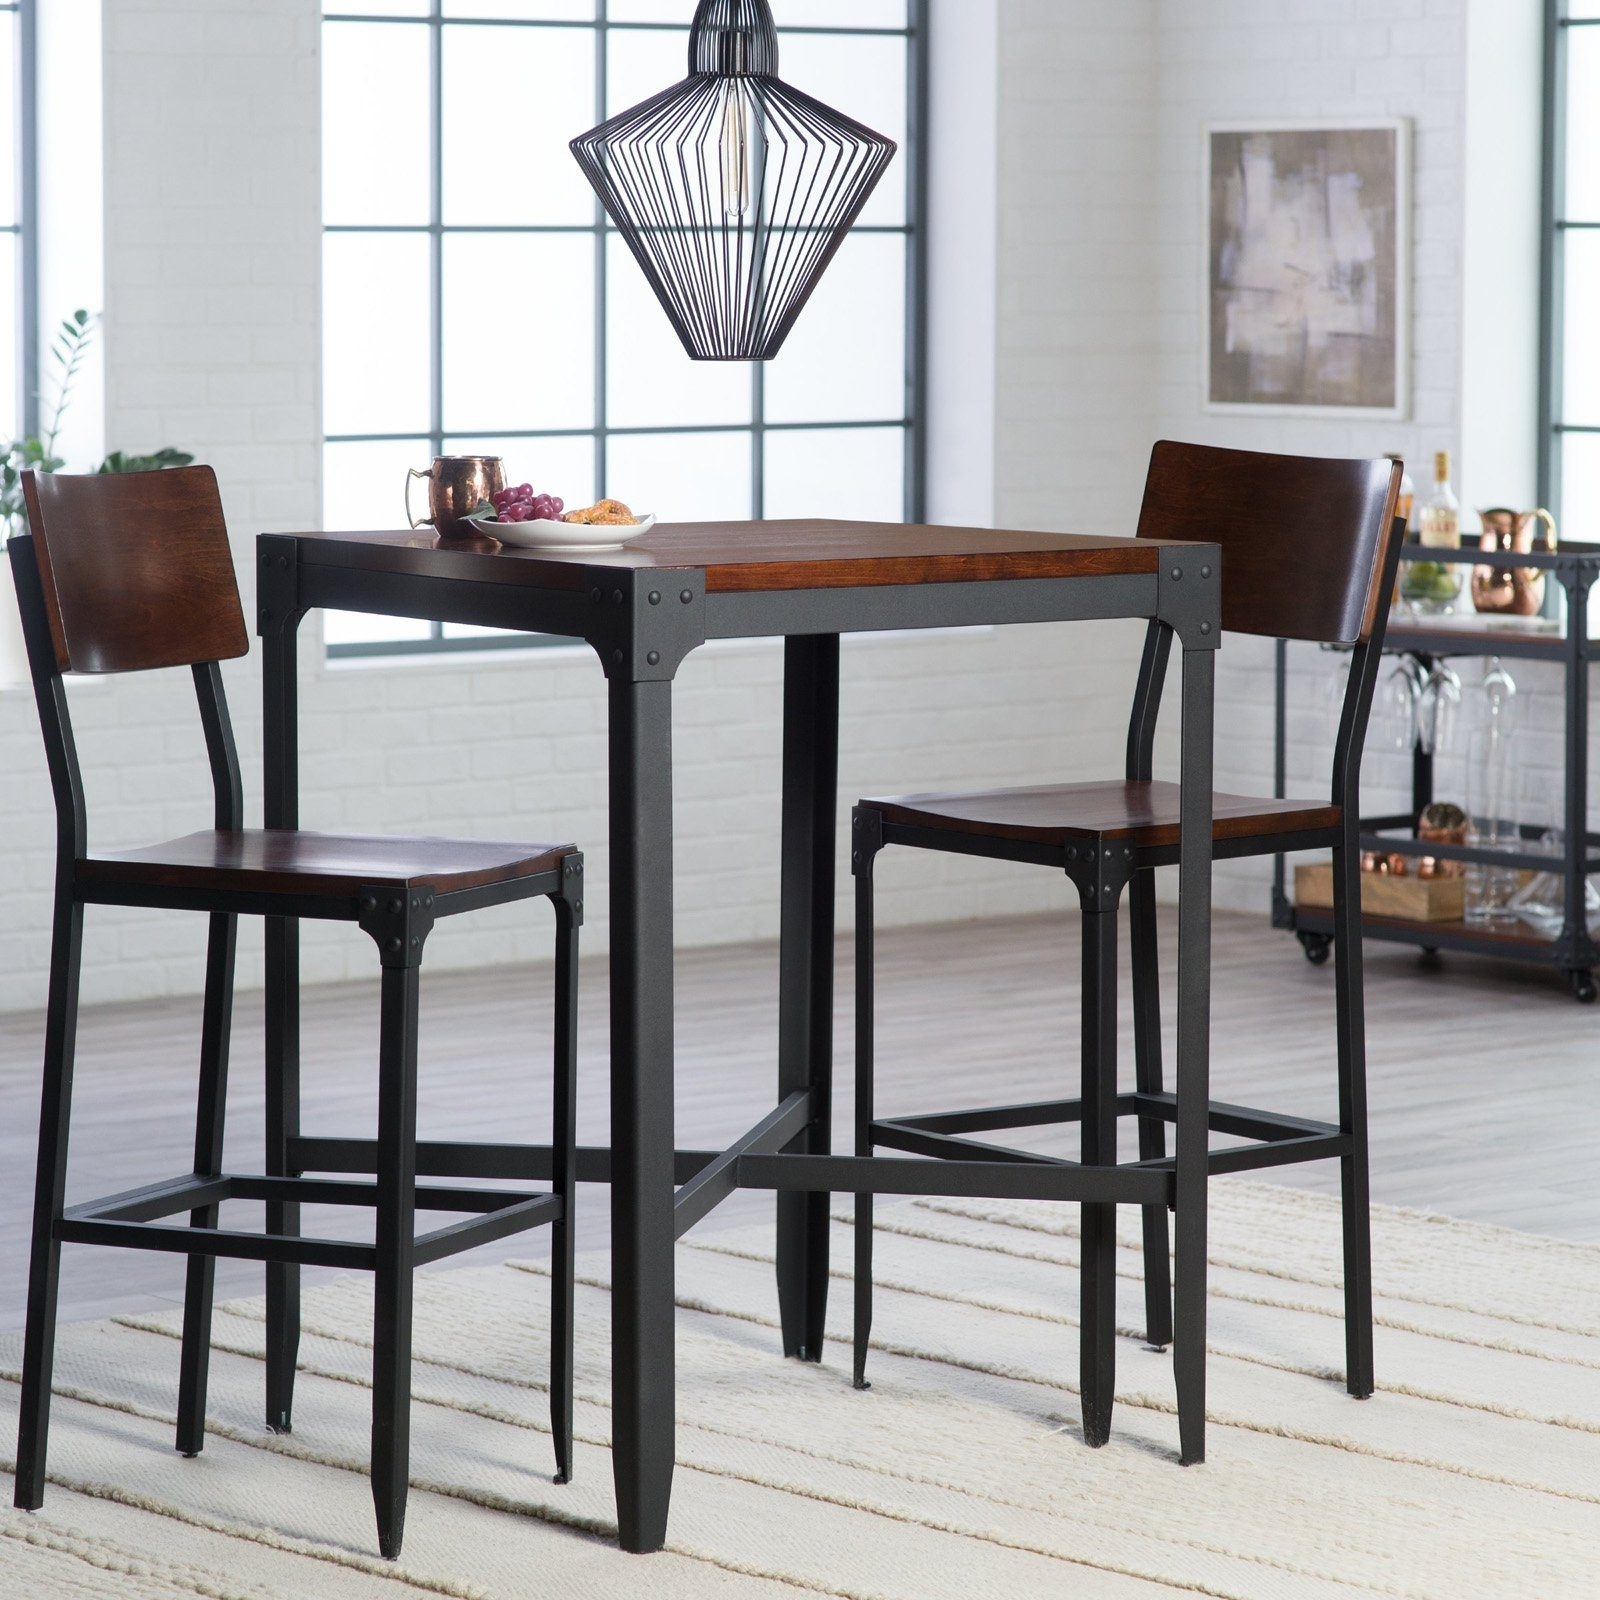 54 Bar Height Pub Table Sets, Kitchen Enchanting Bar Height Kitchen Pertaining To Latest Palazzo 3 Piece Dining Table Sets (Image 3 of 20)